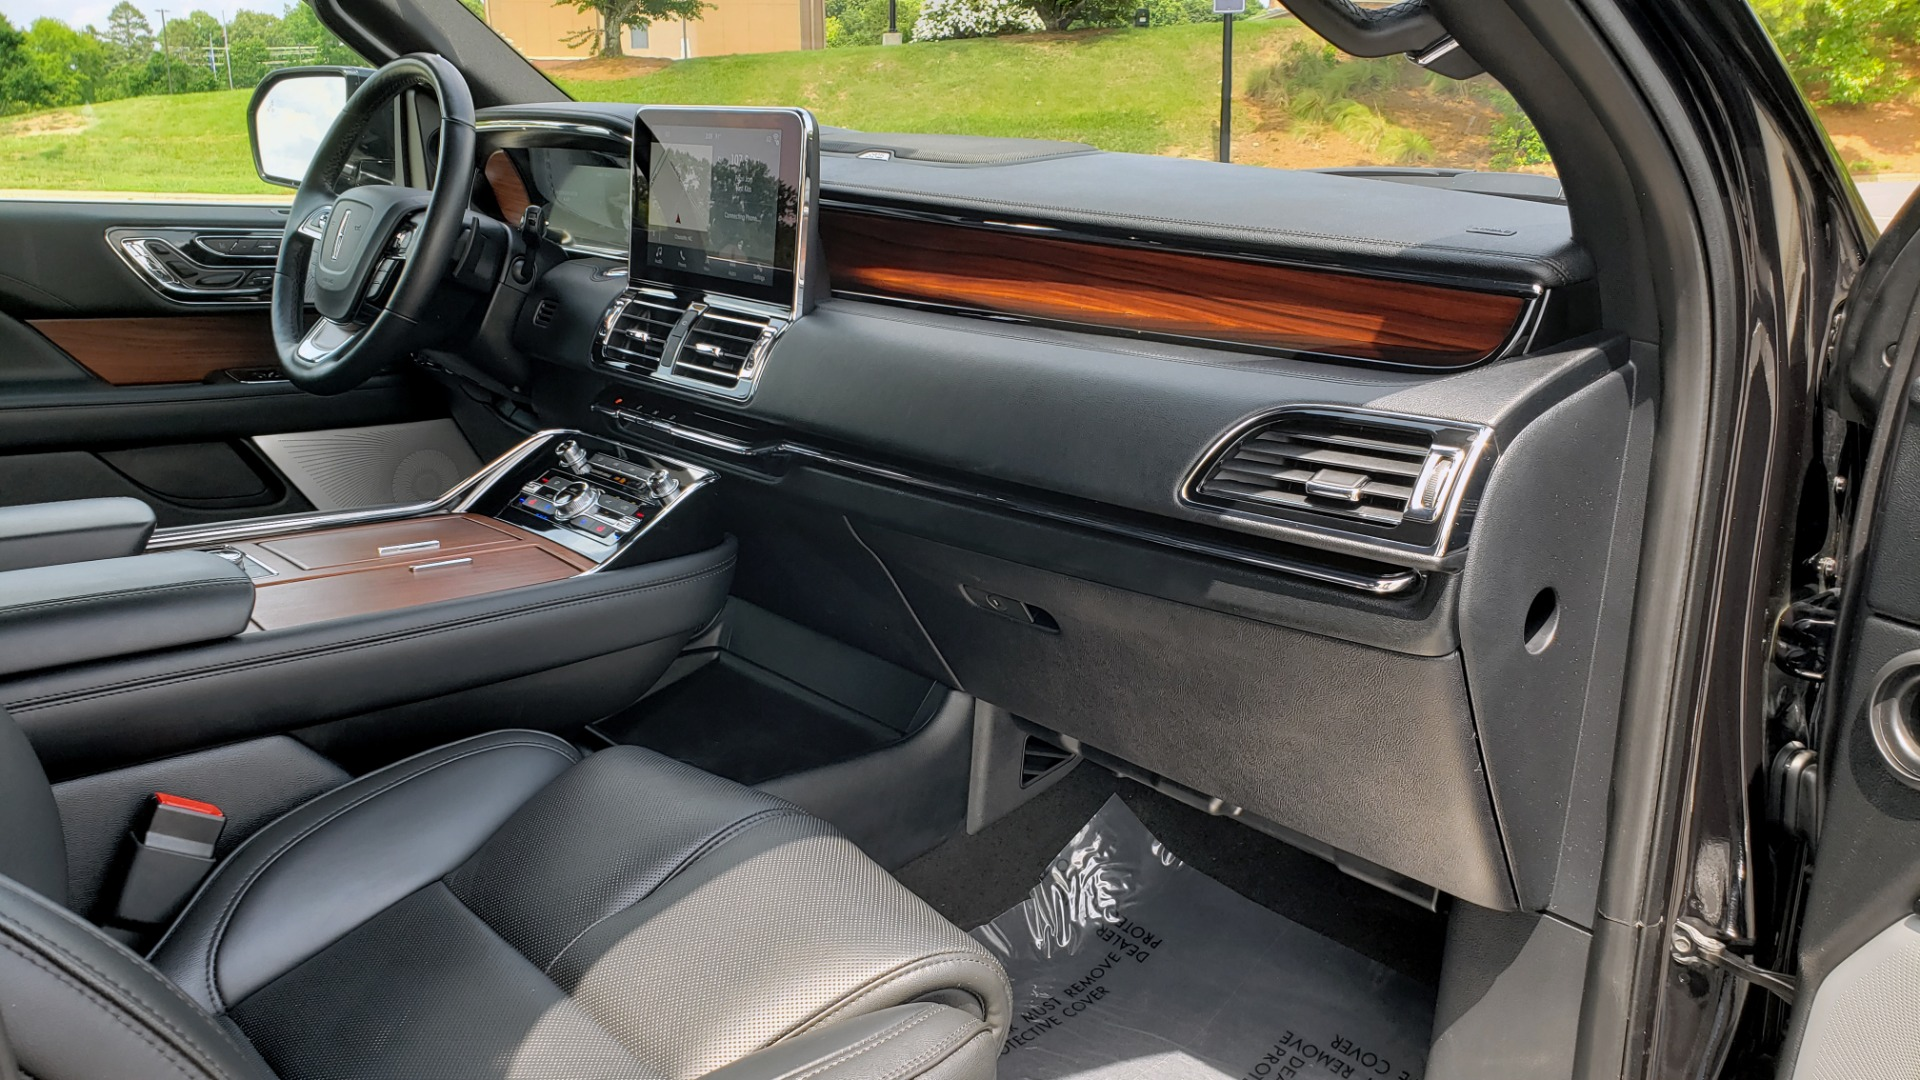 Used 2019 Lincoln NAVIGATOR RESERVE 4X4 / NAV / PANO-ROOF / REVEL ULTIMA AUDIO / 3-ROW / REARVIEW for sale $74,795 at Formula Imports in Charlotte NC 28227 78